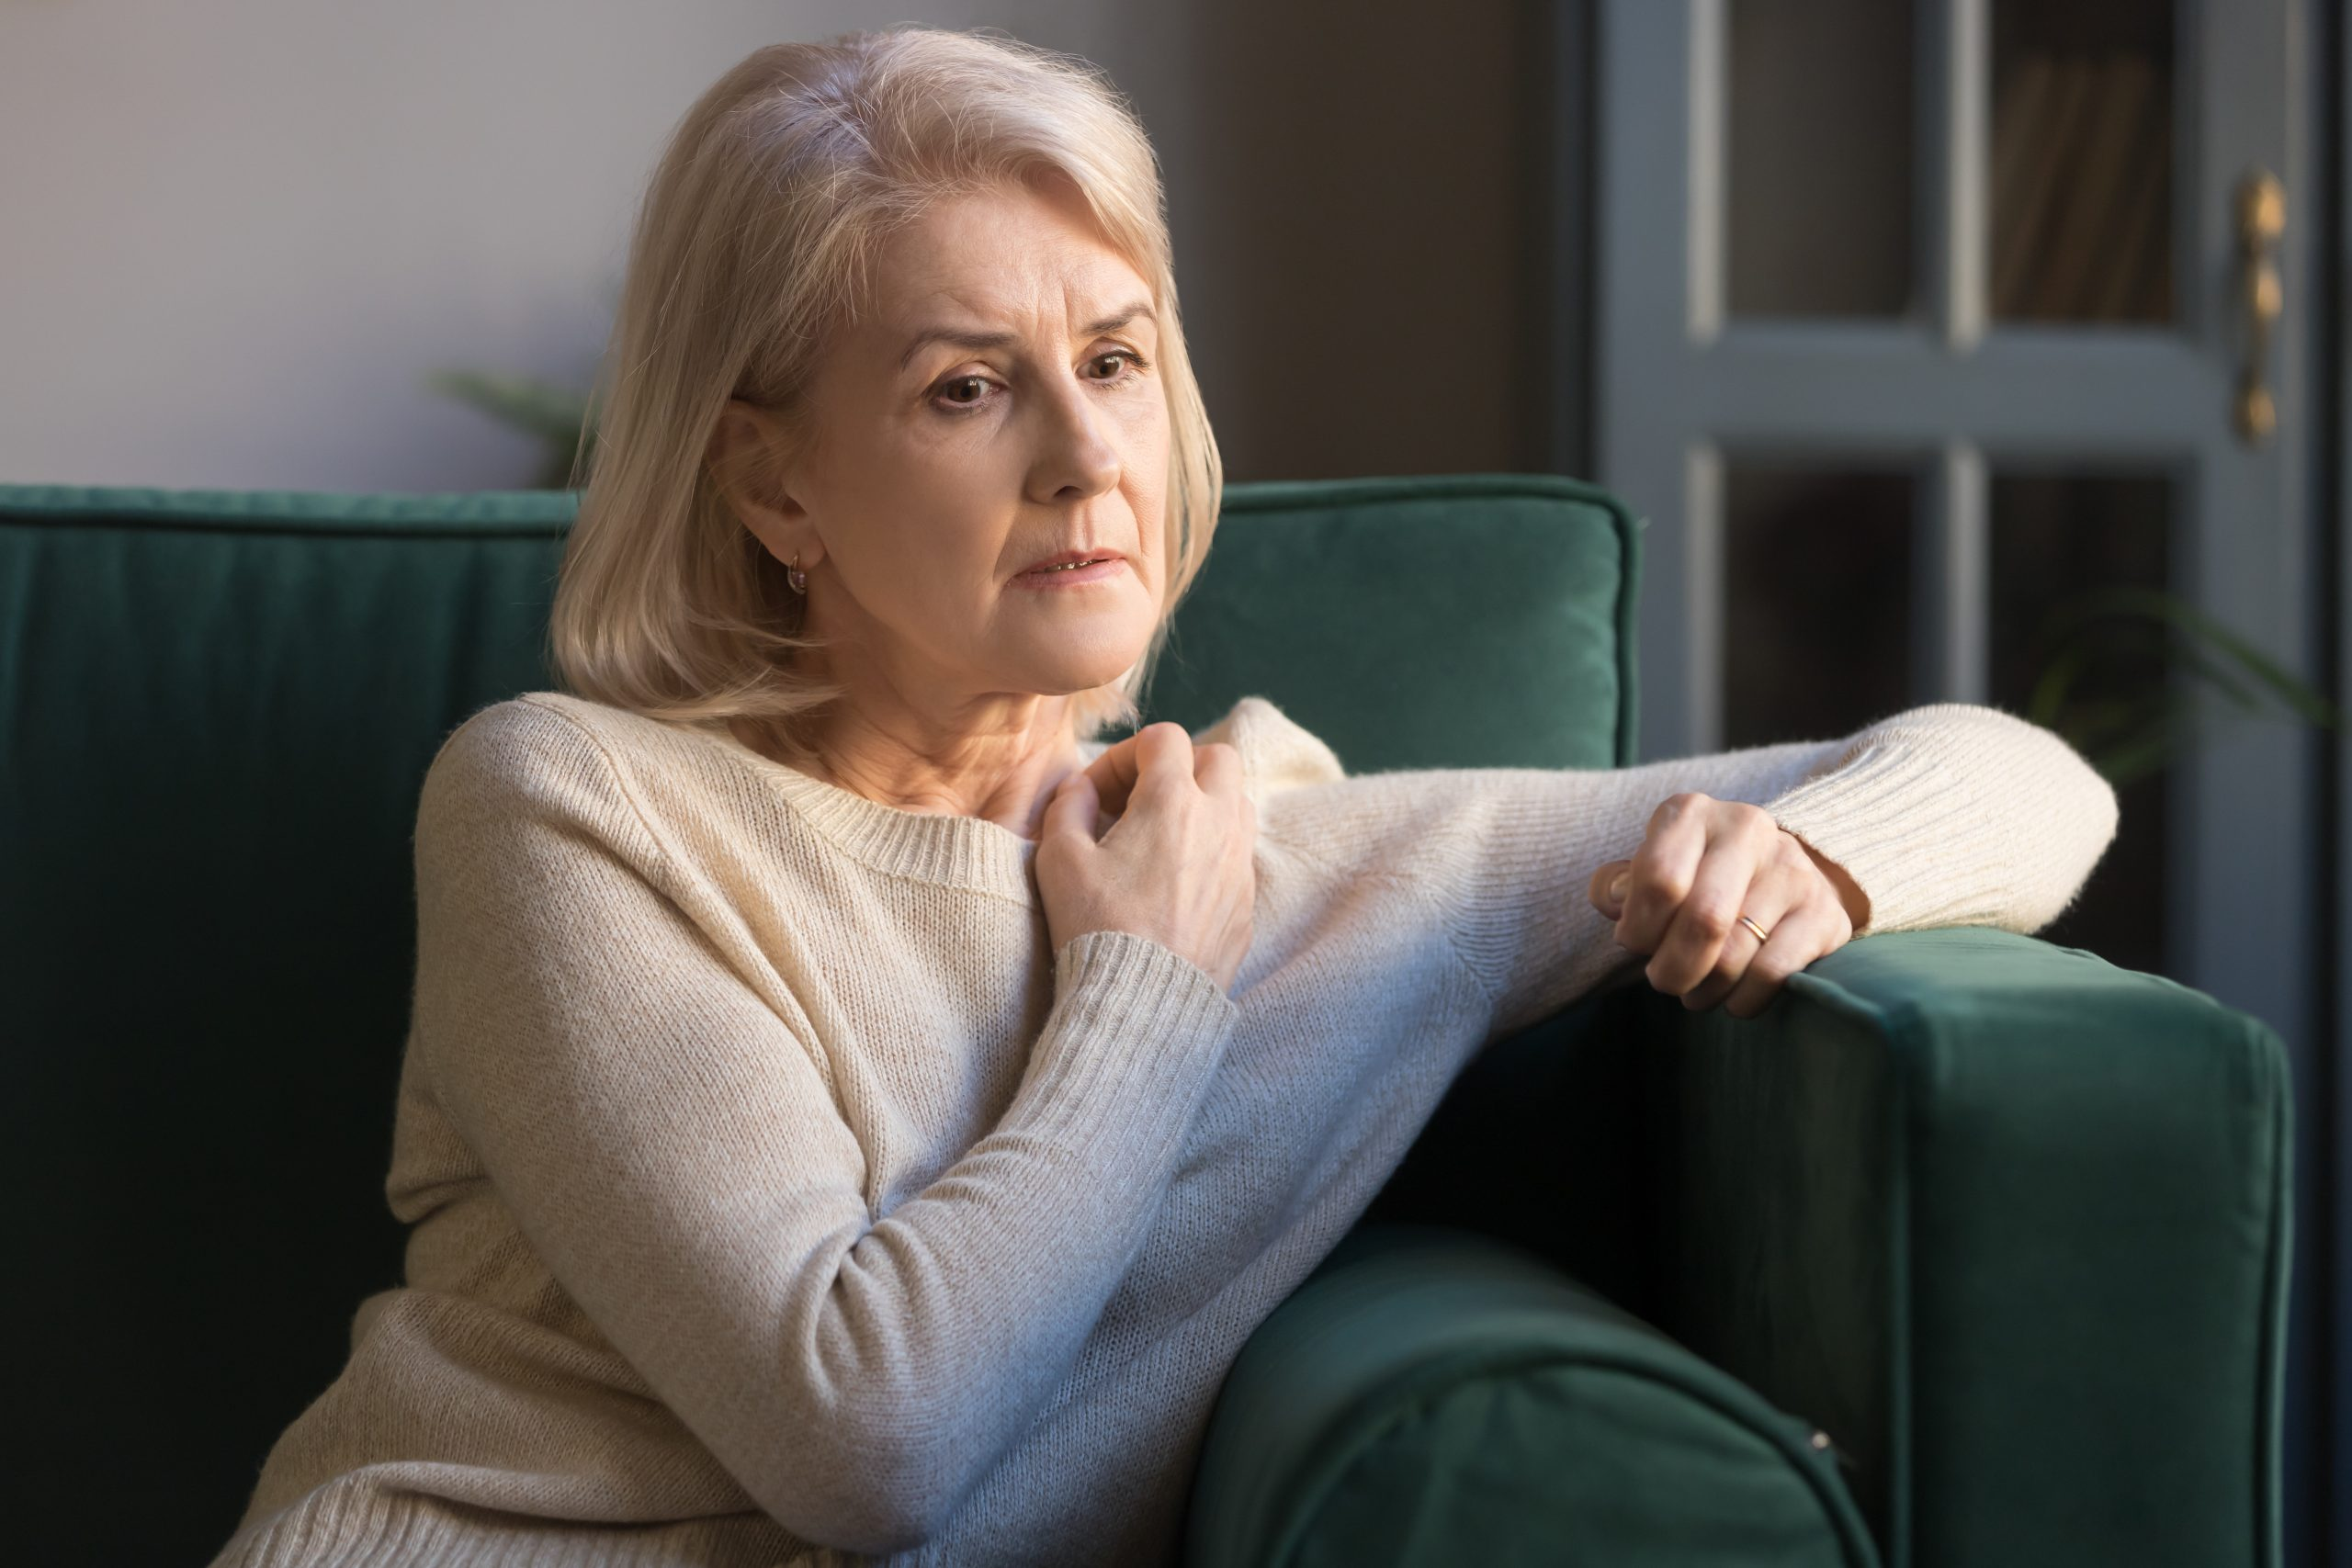 Anxiety in Elderly Individuals